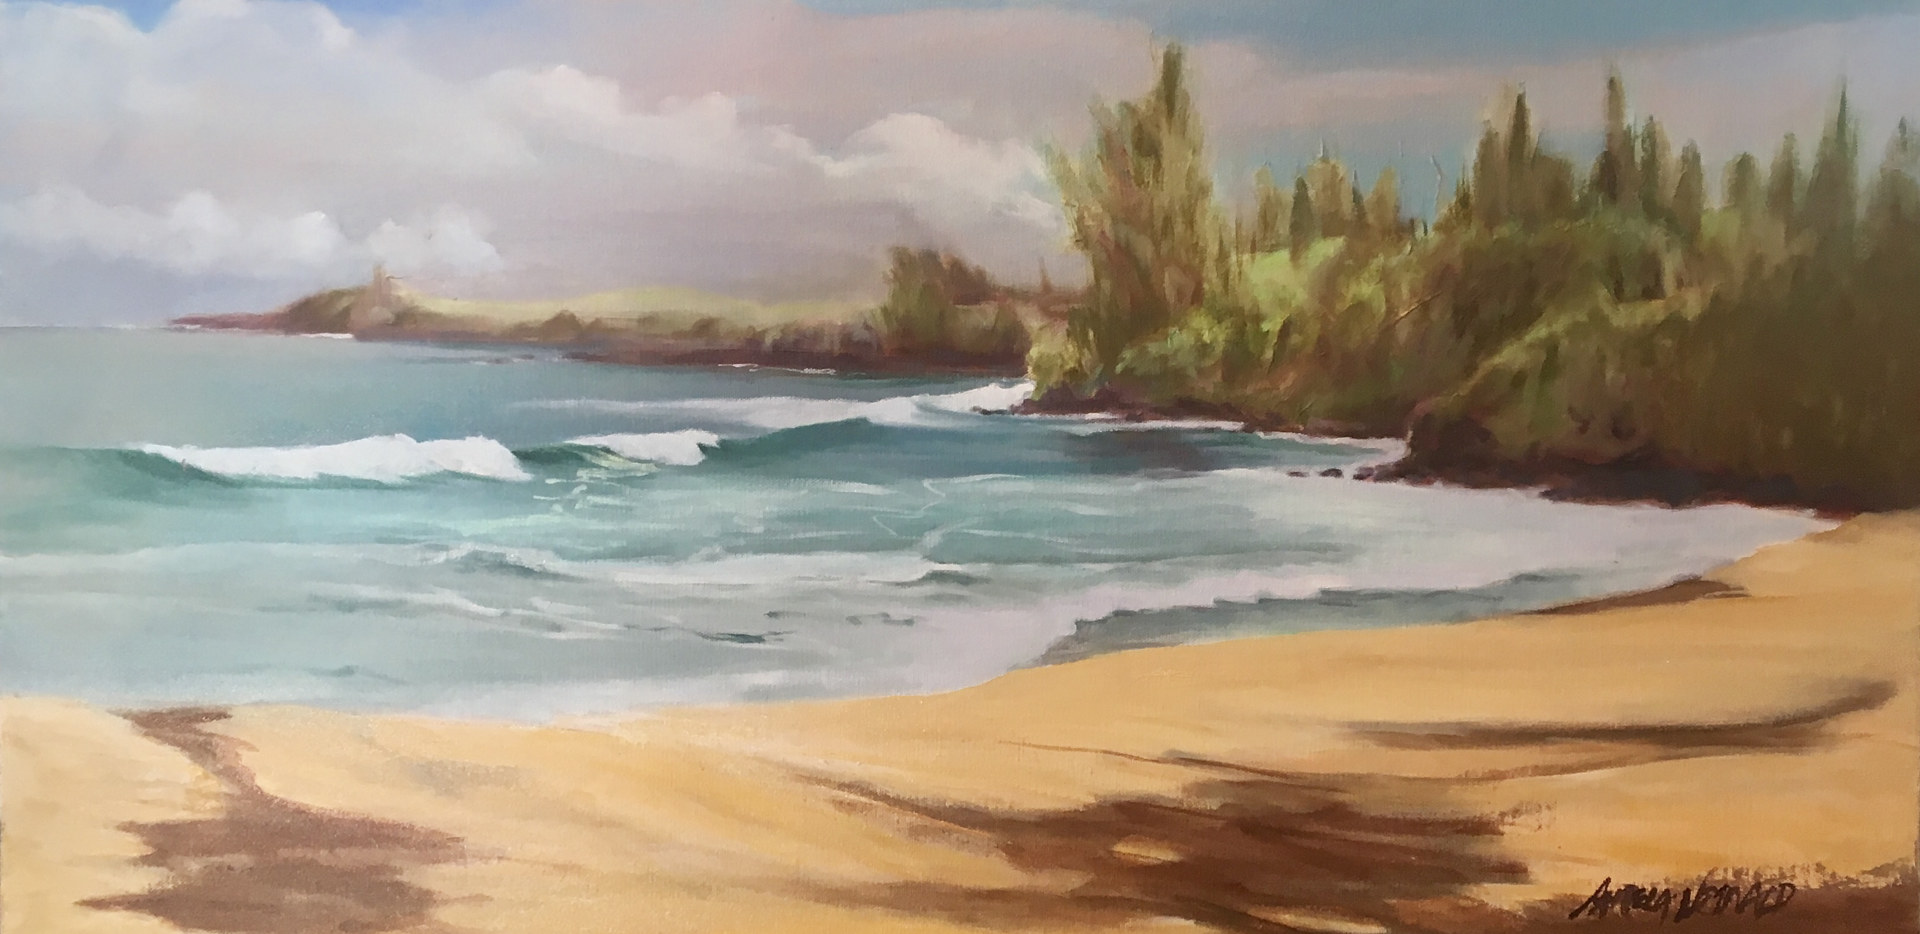 Oil painting Fleming Beach  by Pamela Neswald